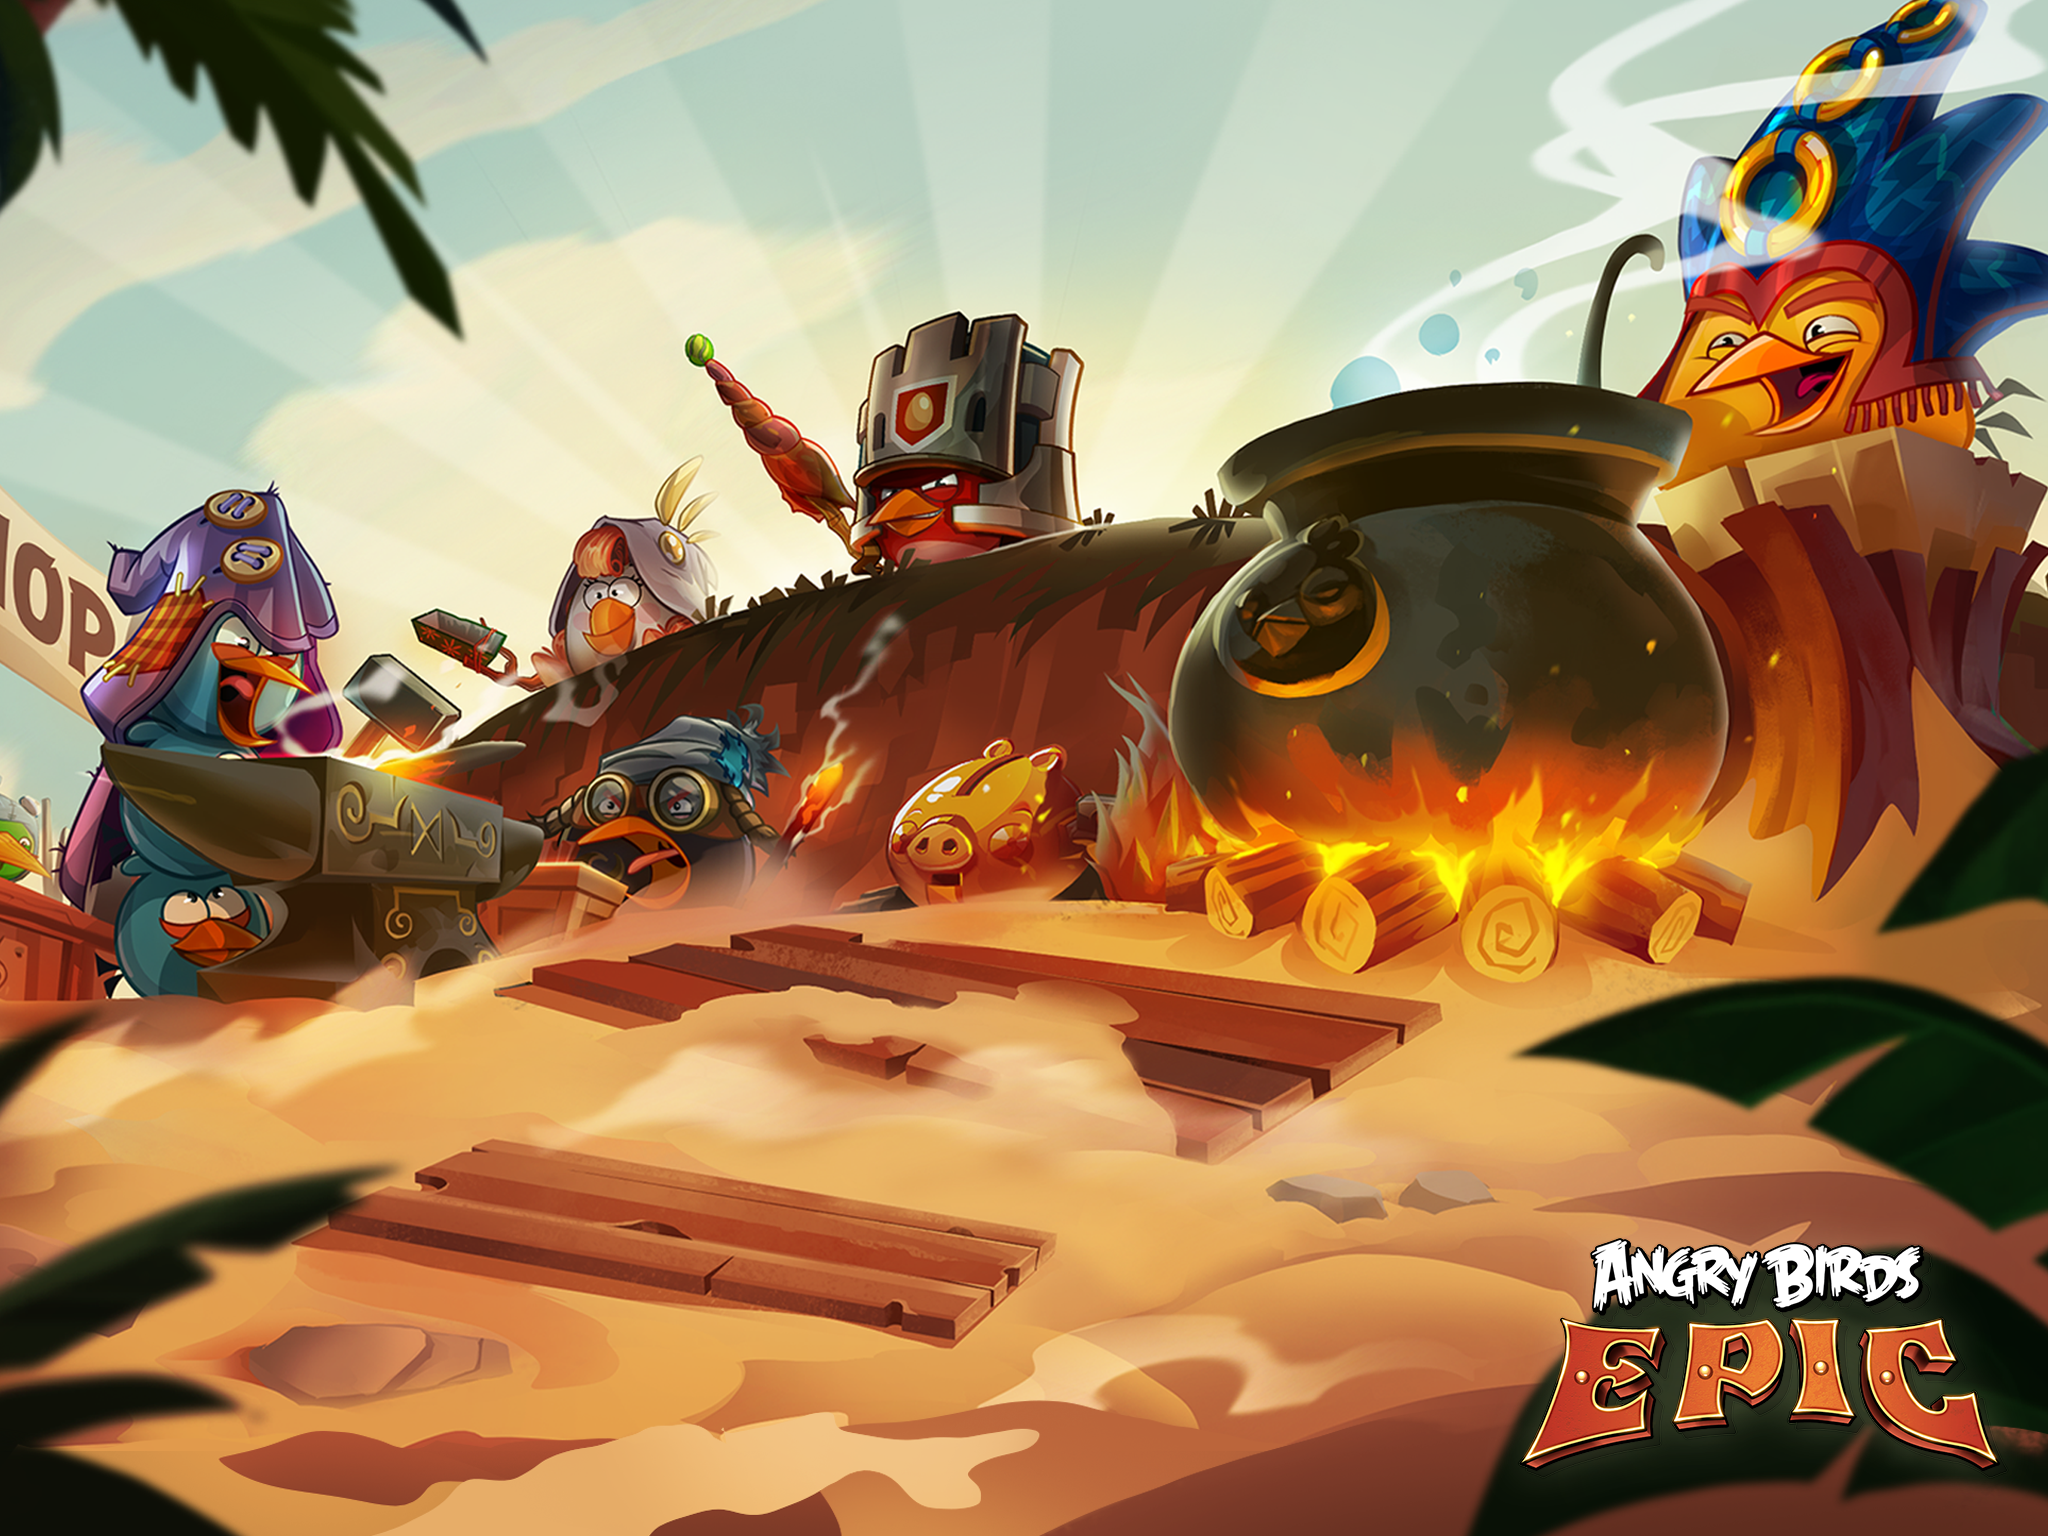 chimera entertainment home | angry birds epic wallpaper